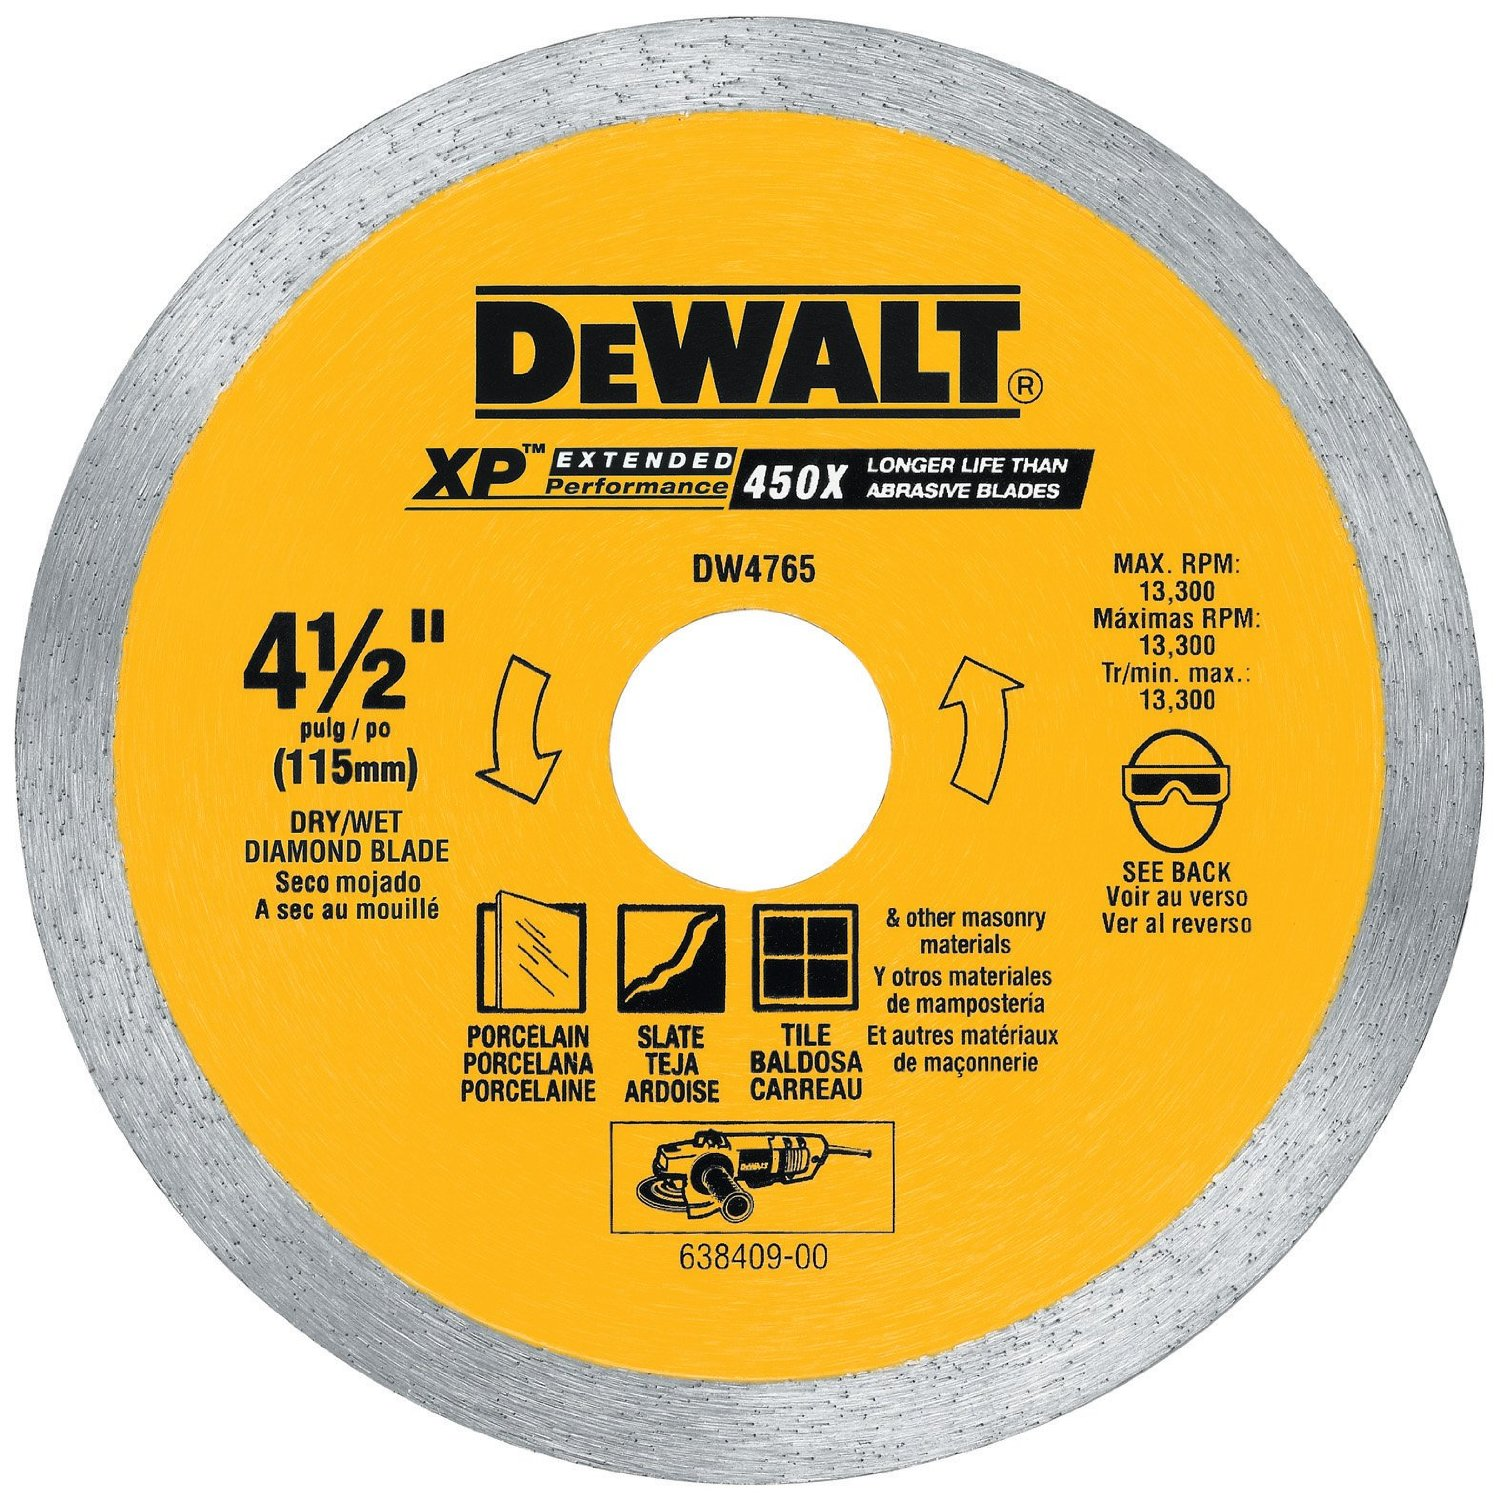 Tile saw the tile home guide tile saw blades do not have sharp teeth that rip and tear in order to cut through the material instead they actually grind through the tile greentooth Images